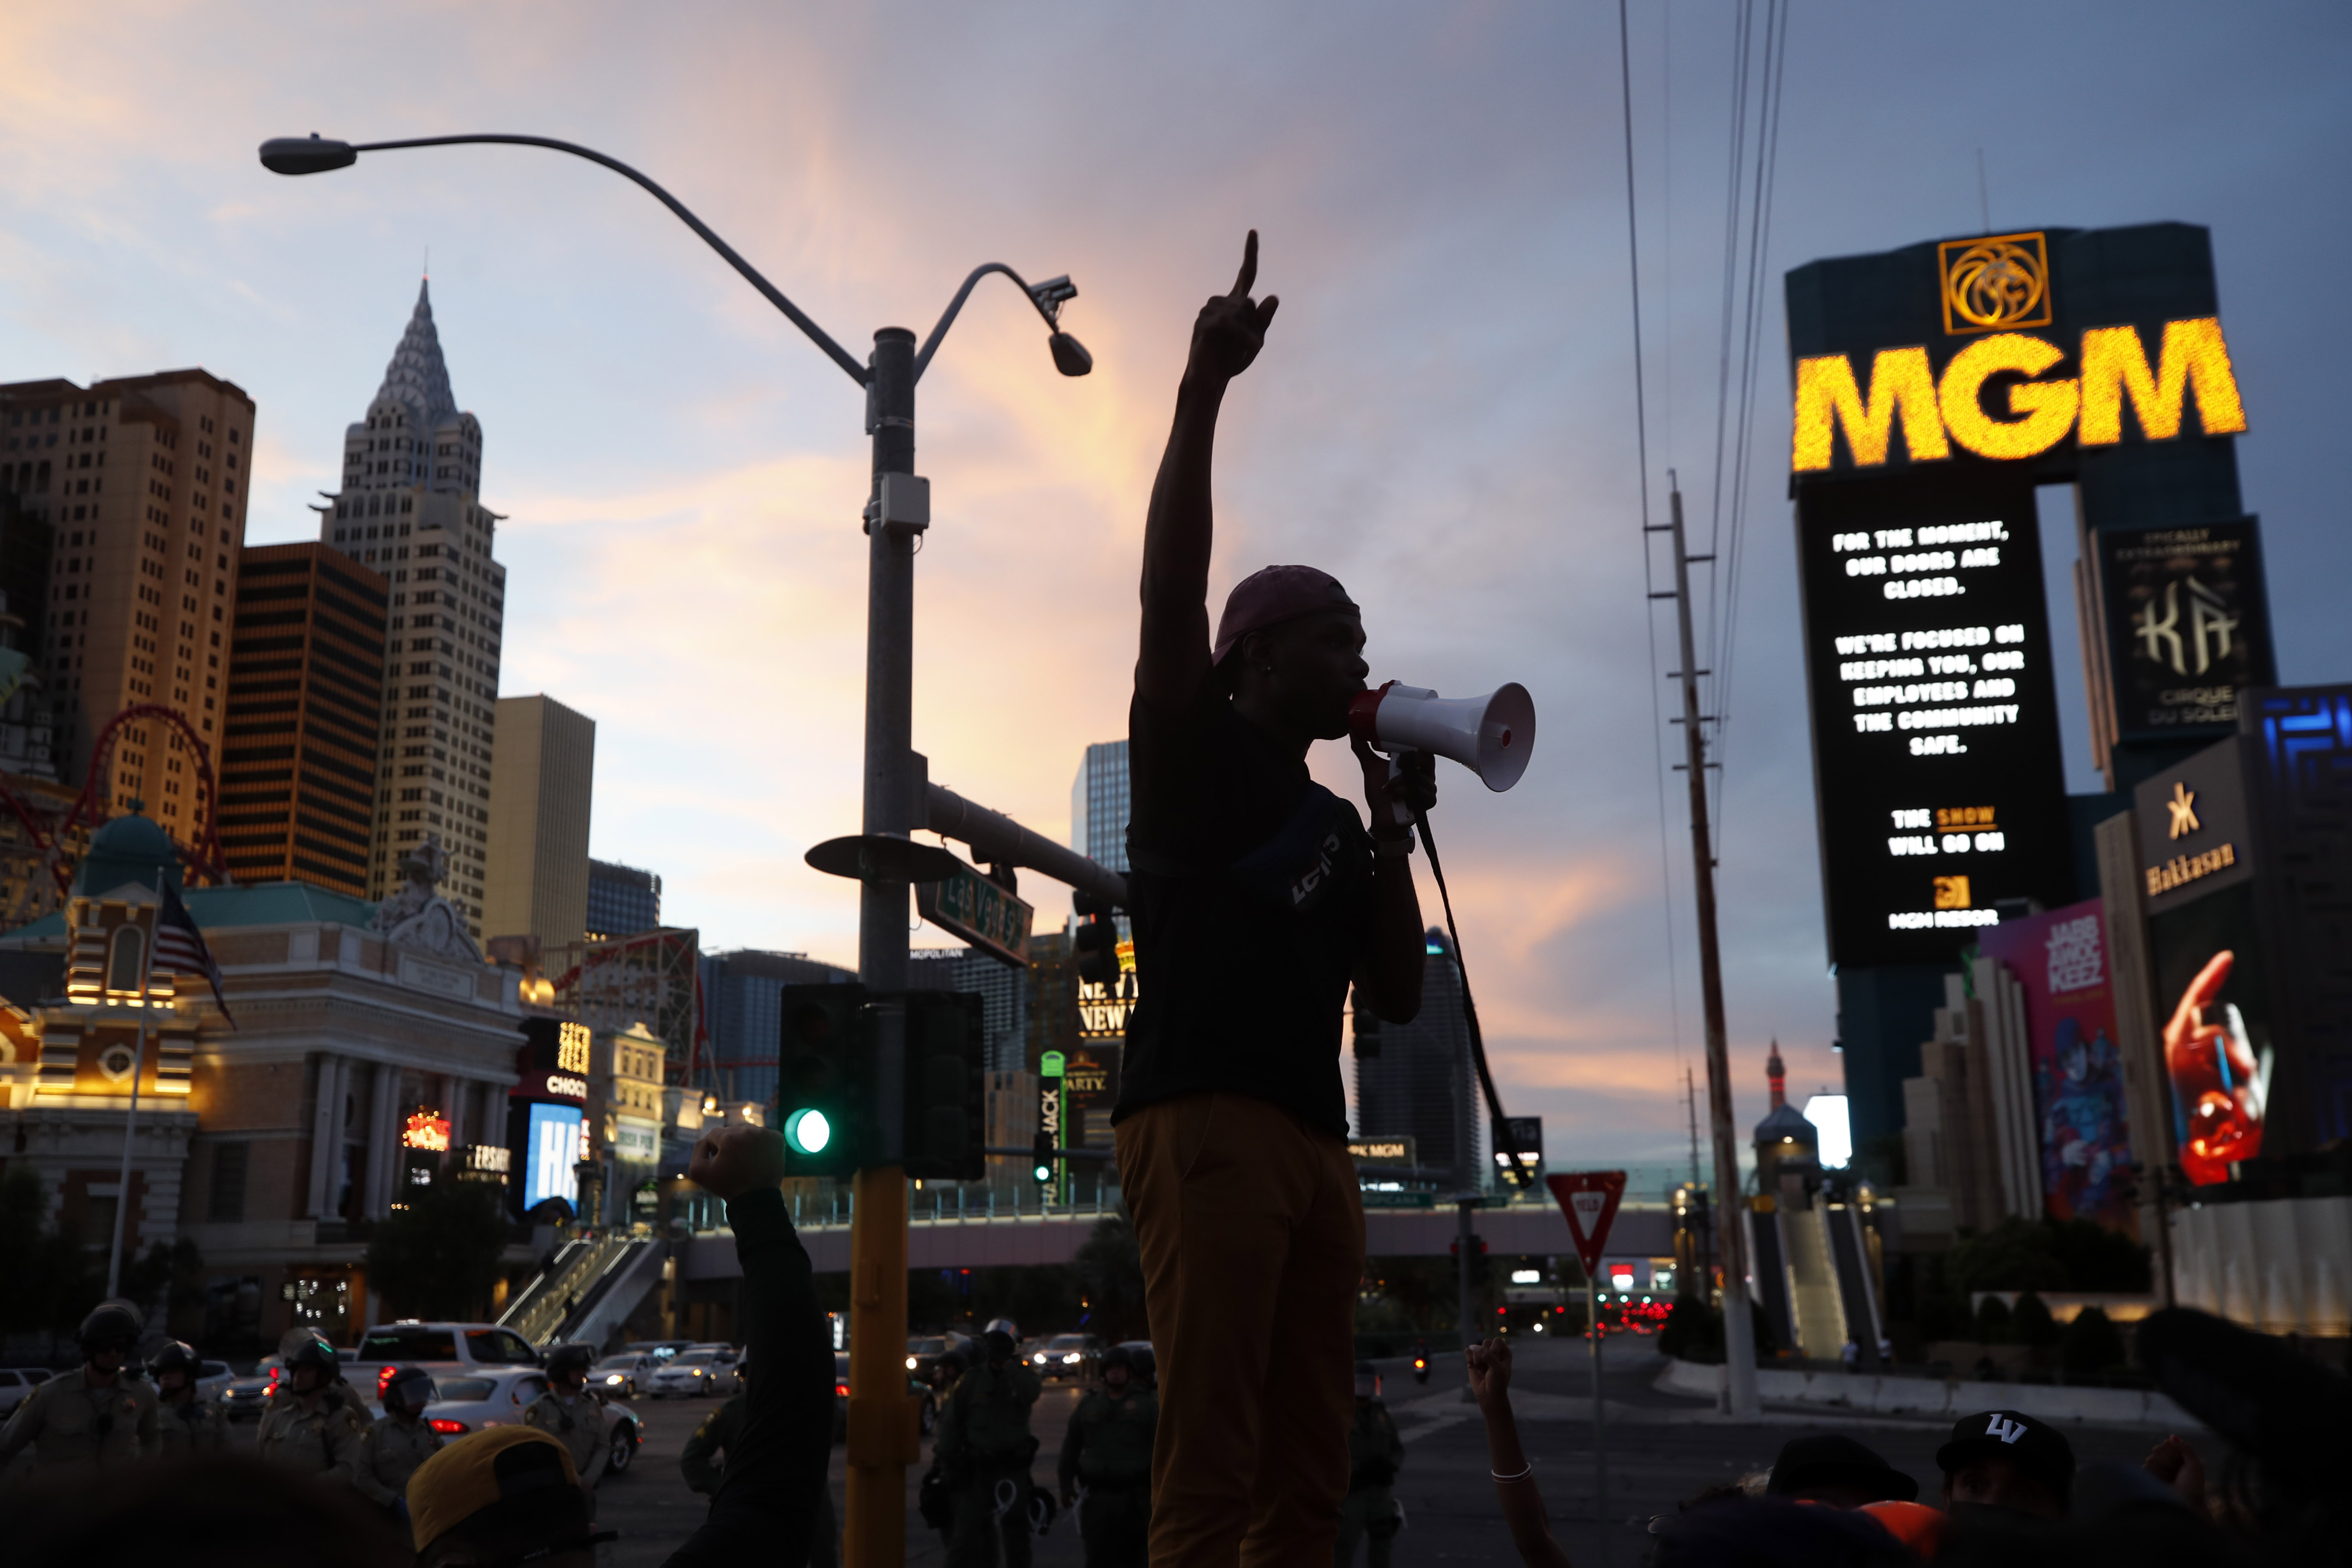 Protesters rally on the Las Vegas Strip Sunday, May 31, 2020, in Las Vegas, over the death of George Floyd, a black man who was in police custody in Minneapolis. Floyd died after being restrained by Minneapolis police officers on Memorial Day. (AP Photo/Steve Marcus)